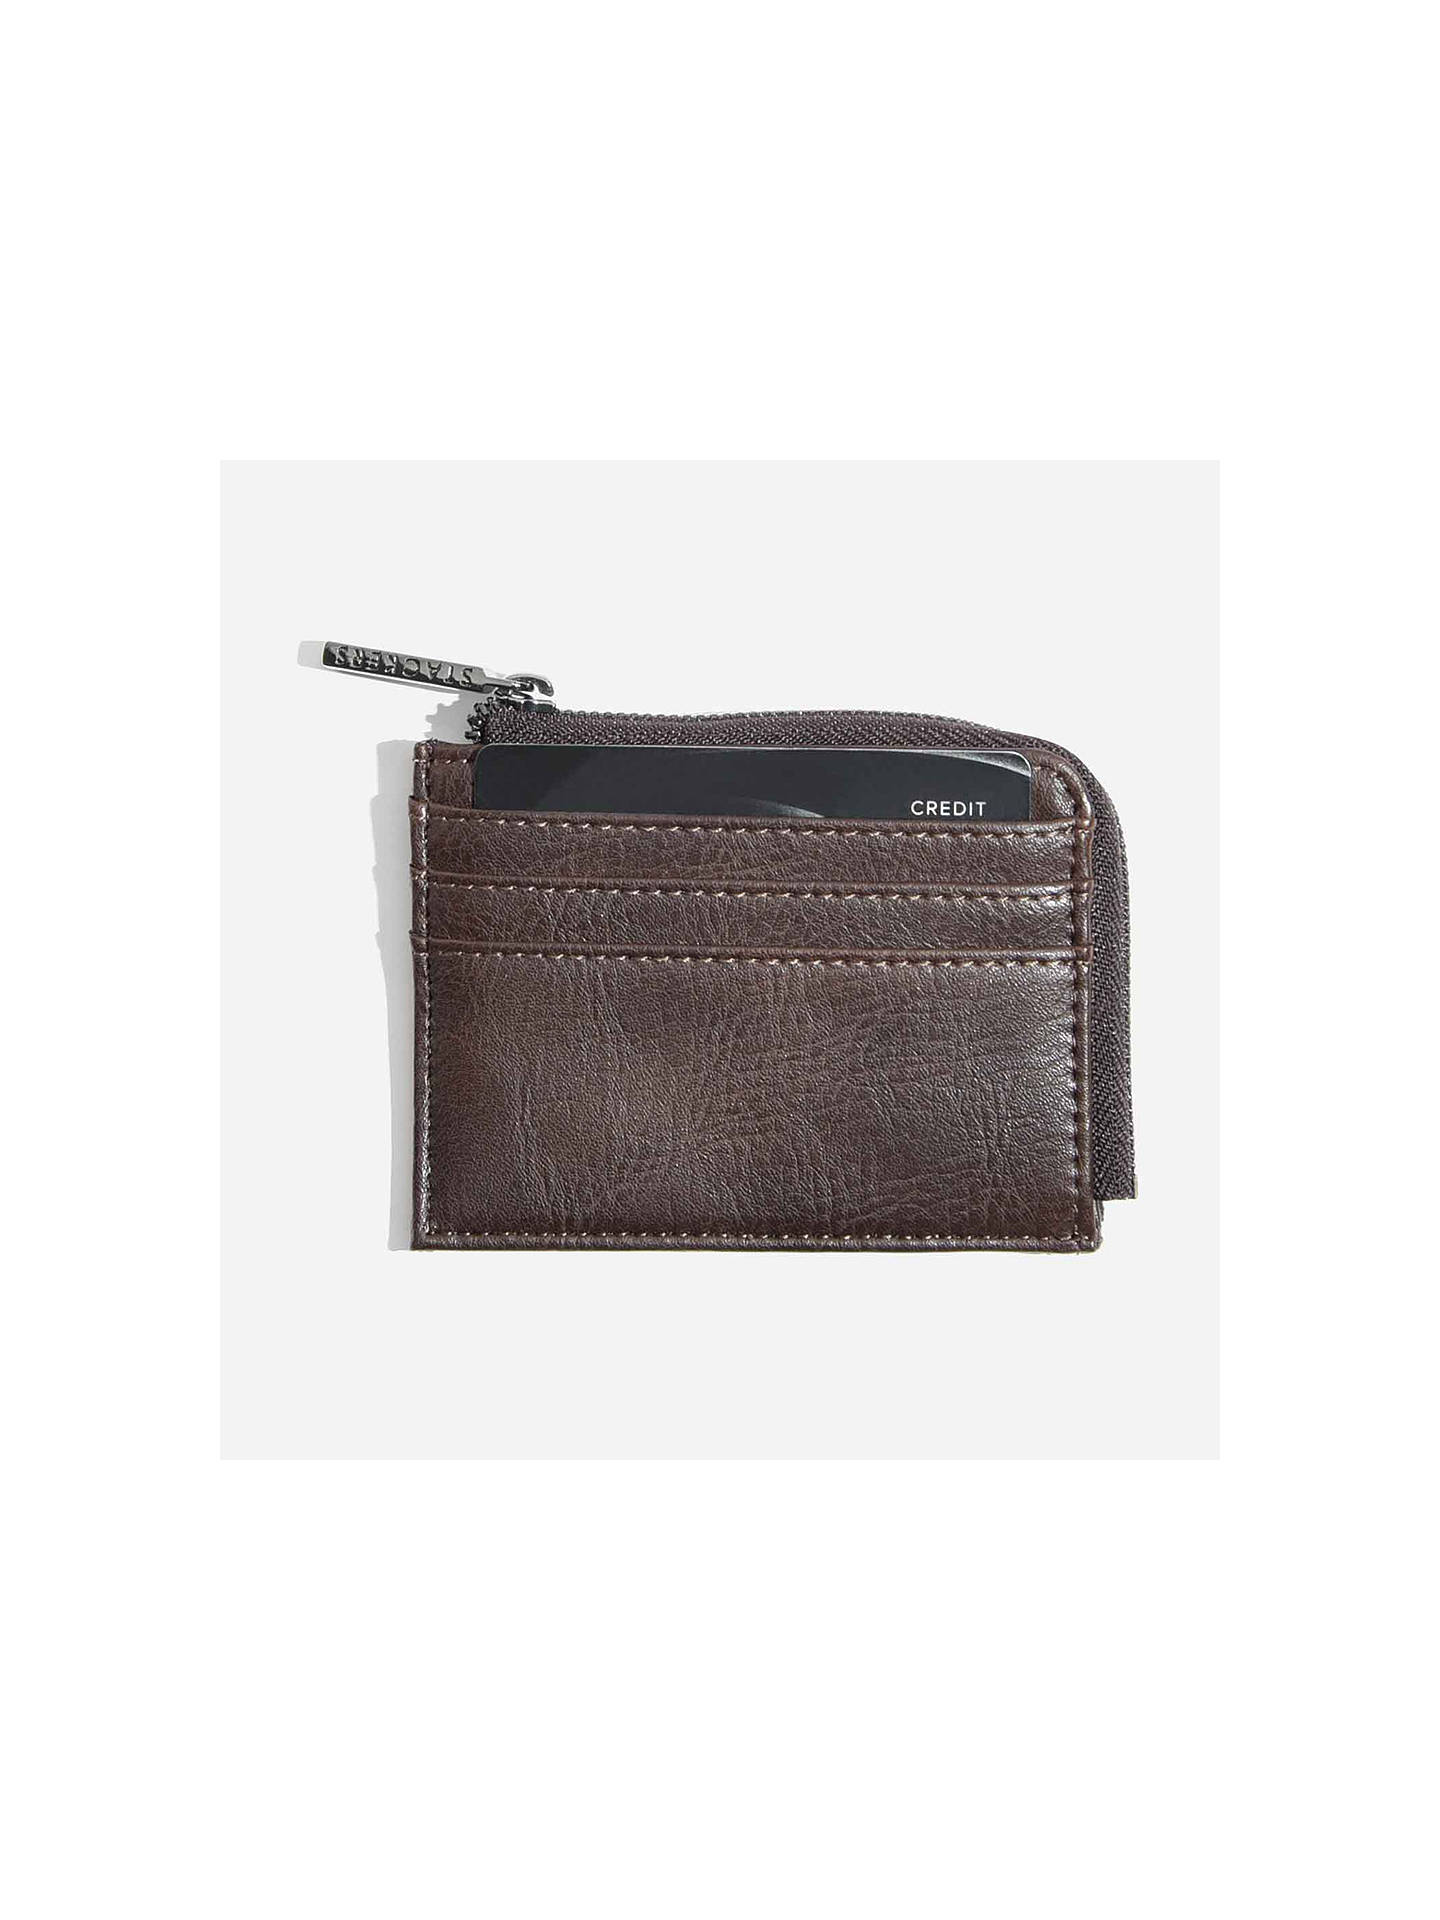 BuyStackers Zipped ID Case, Brown Online at johnlewis.com